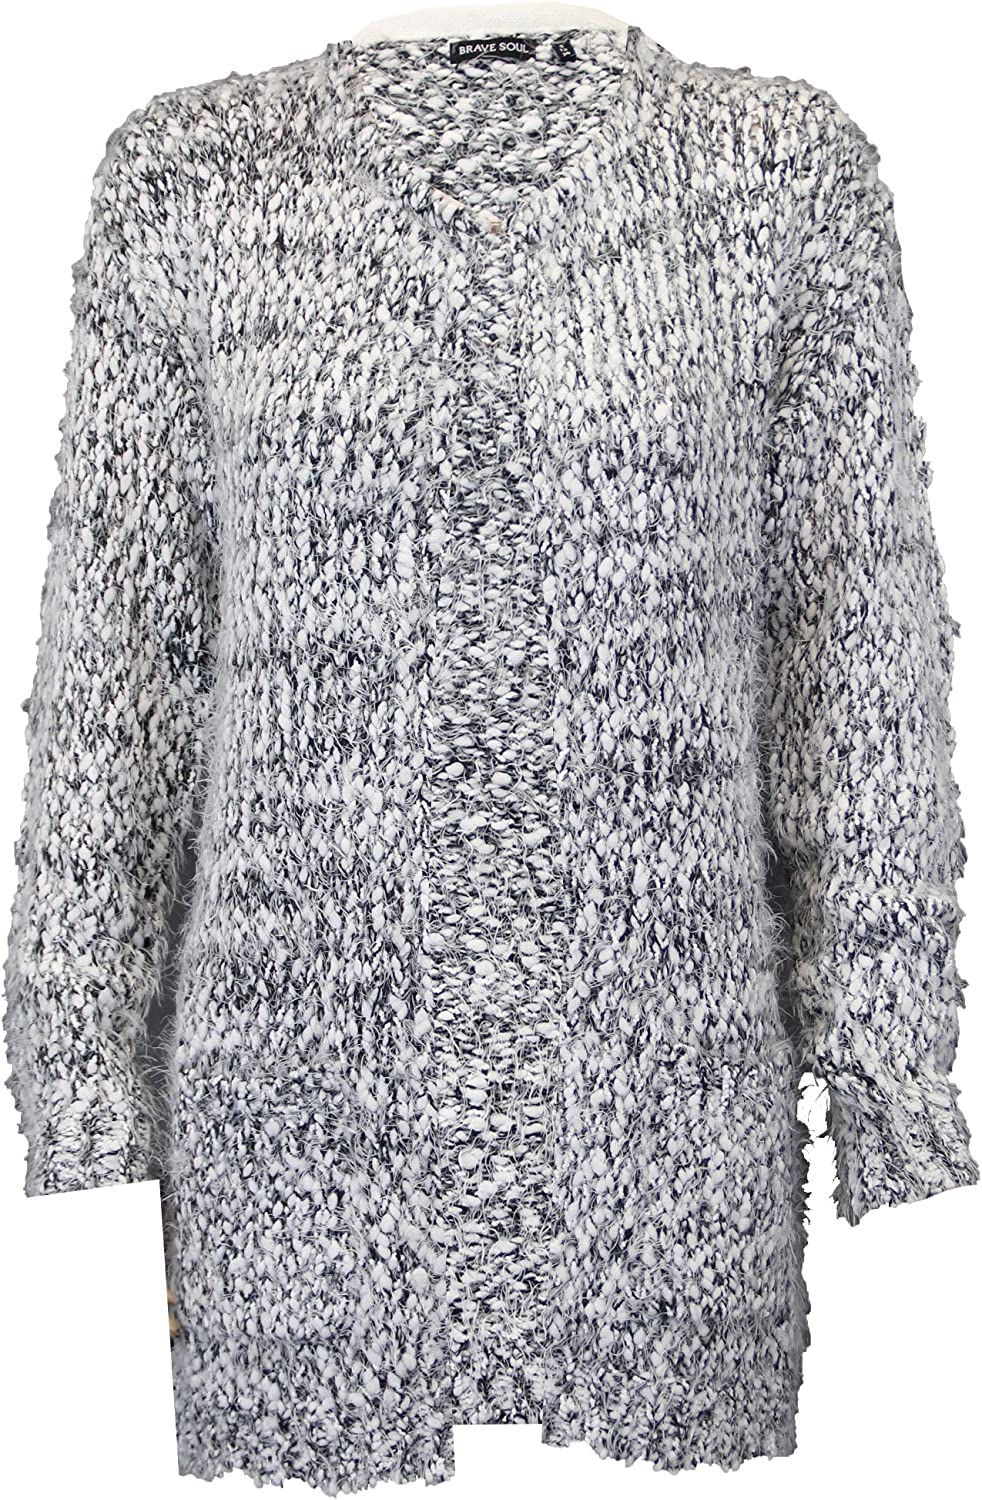 Brave Soul Womens Mohair Knitted Cardigan 285TAYLOR